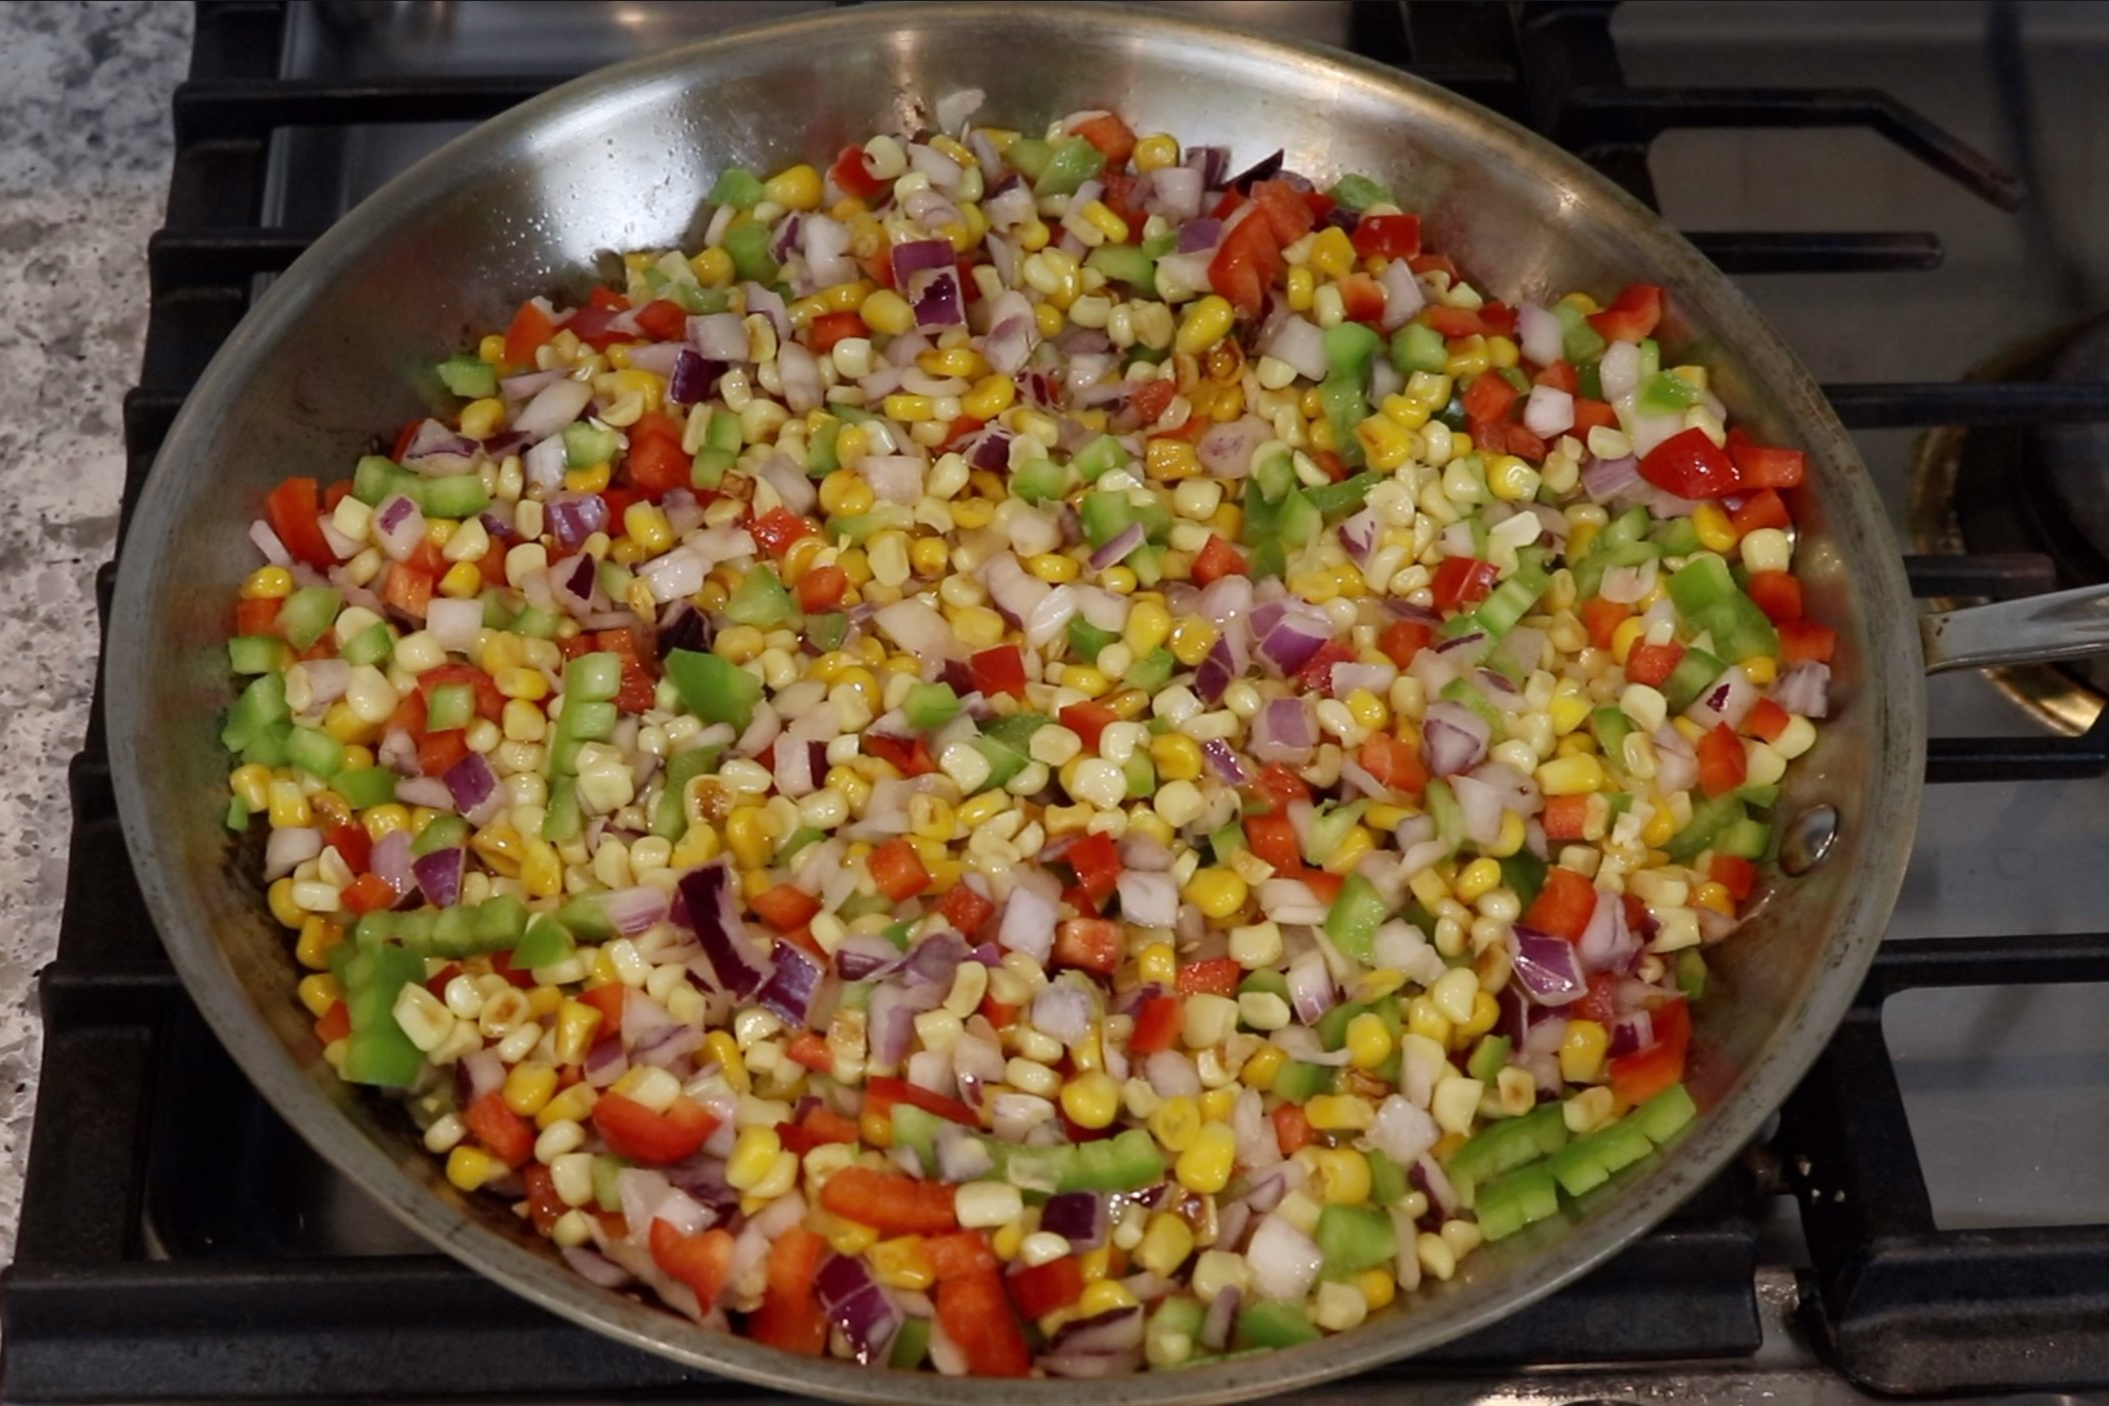 3. Add the garlic, onion and bell peppers to the skillet. -